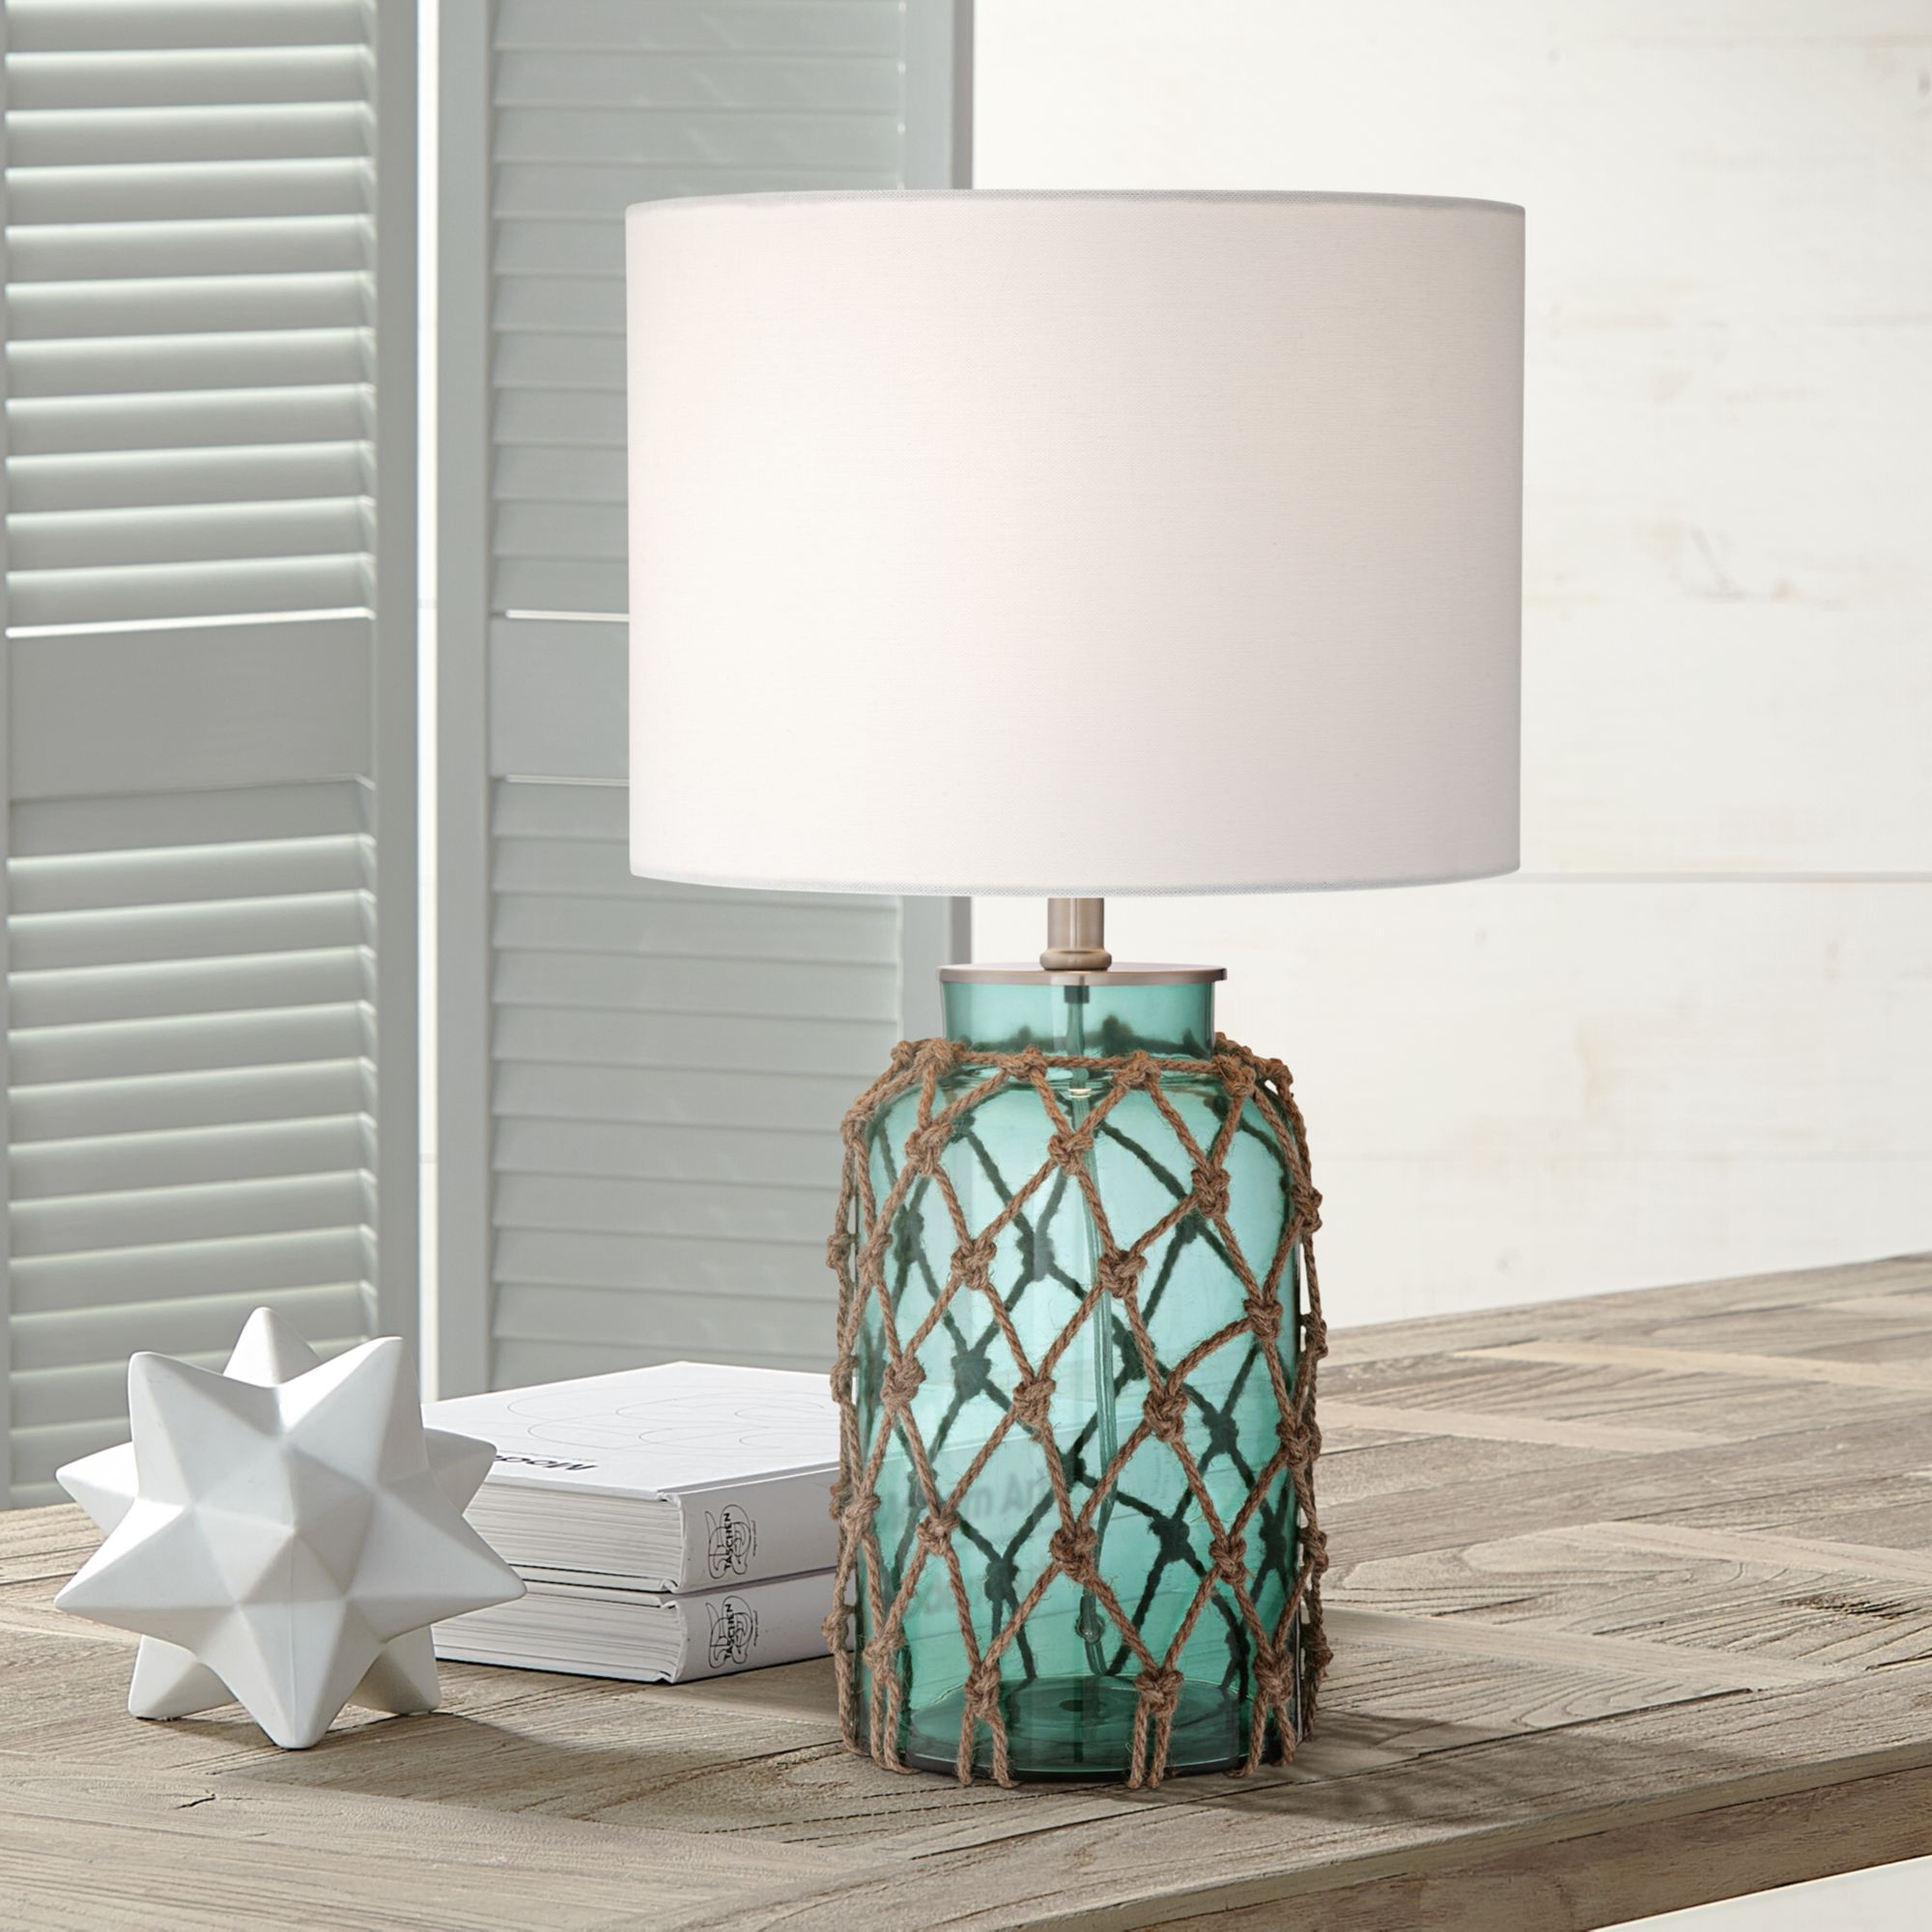 lighting nautical accent table lamp coastal blue green glass lamps rope off white drum shade for living room family bedroom west elm long bar and chairs black tall bedside dale